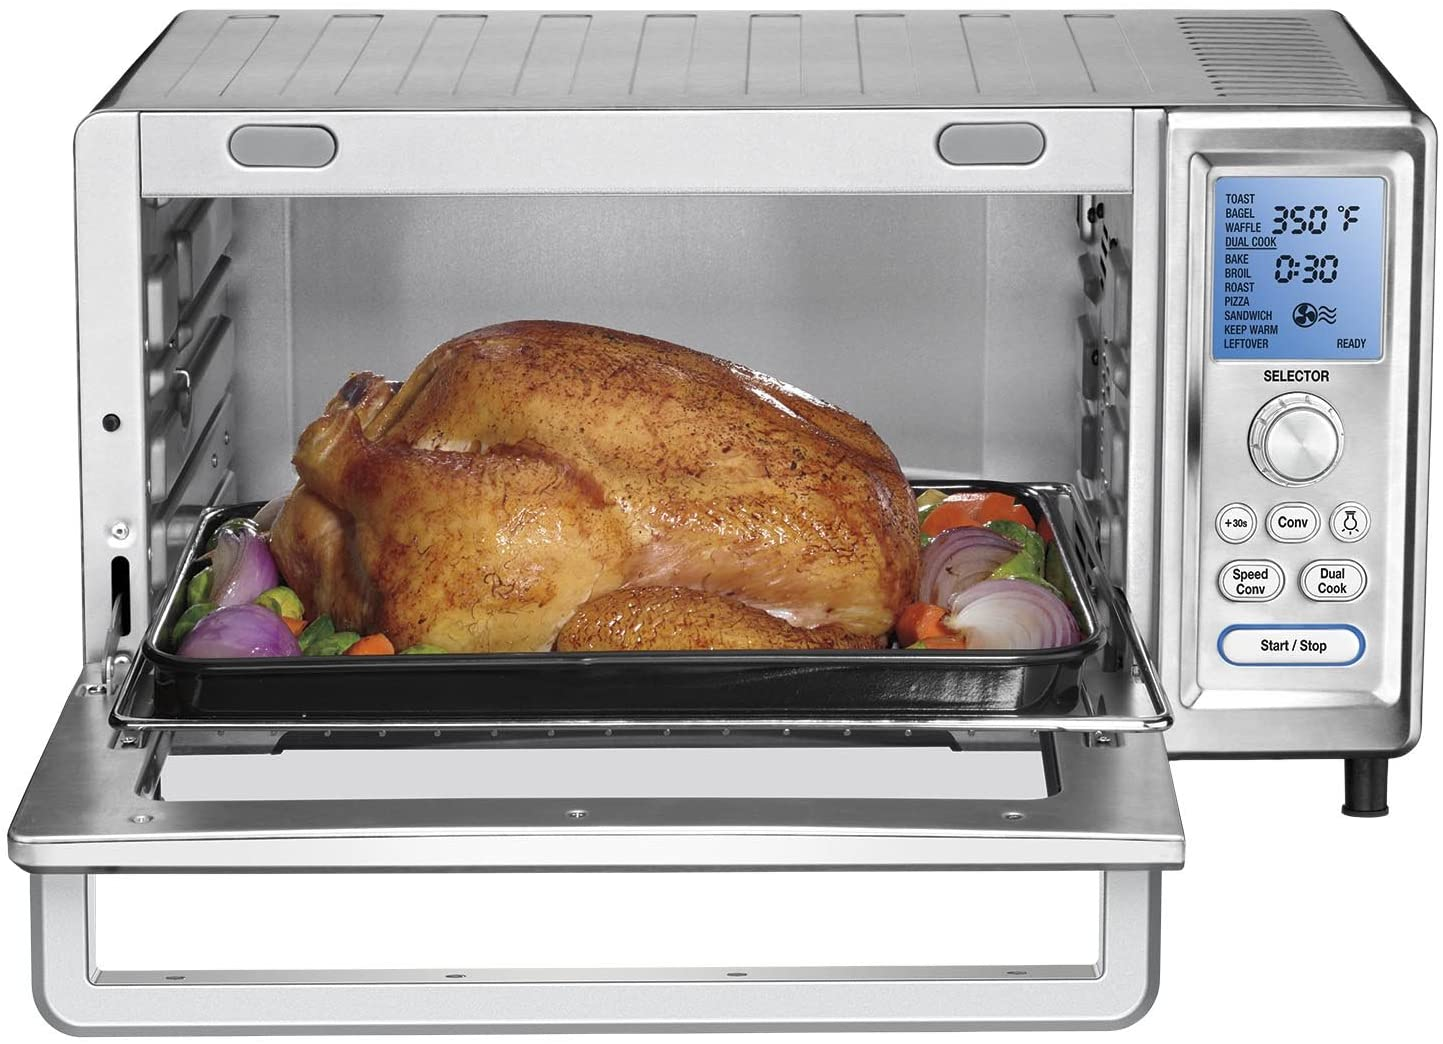 baking chicken in toaster oven